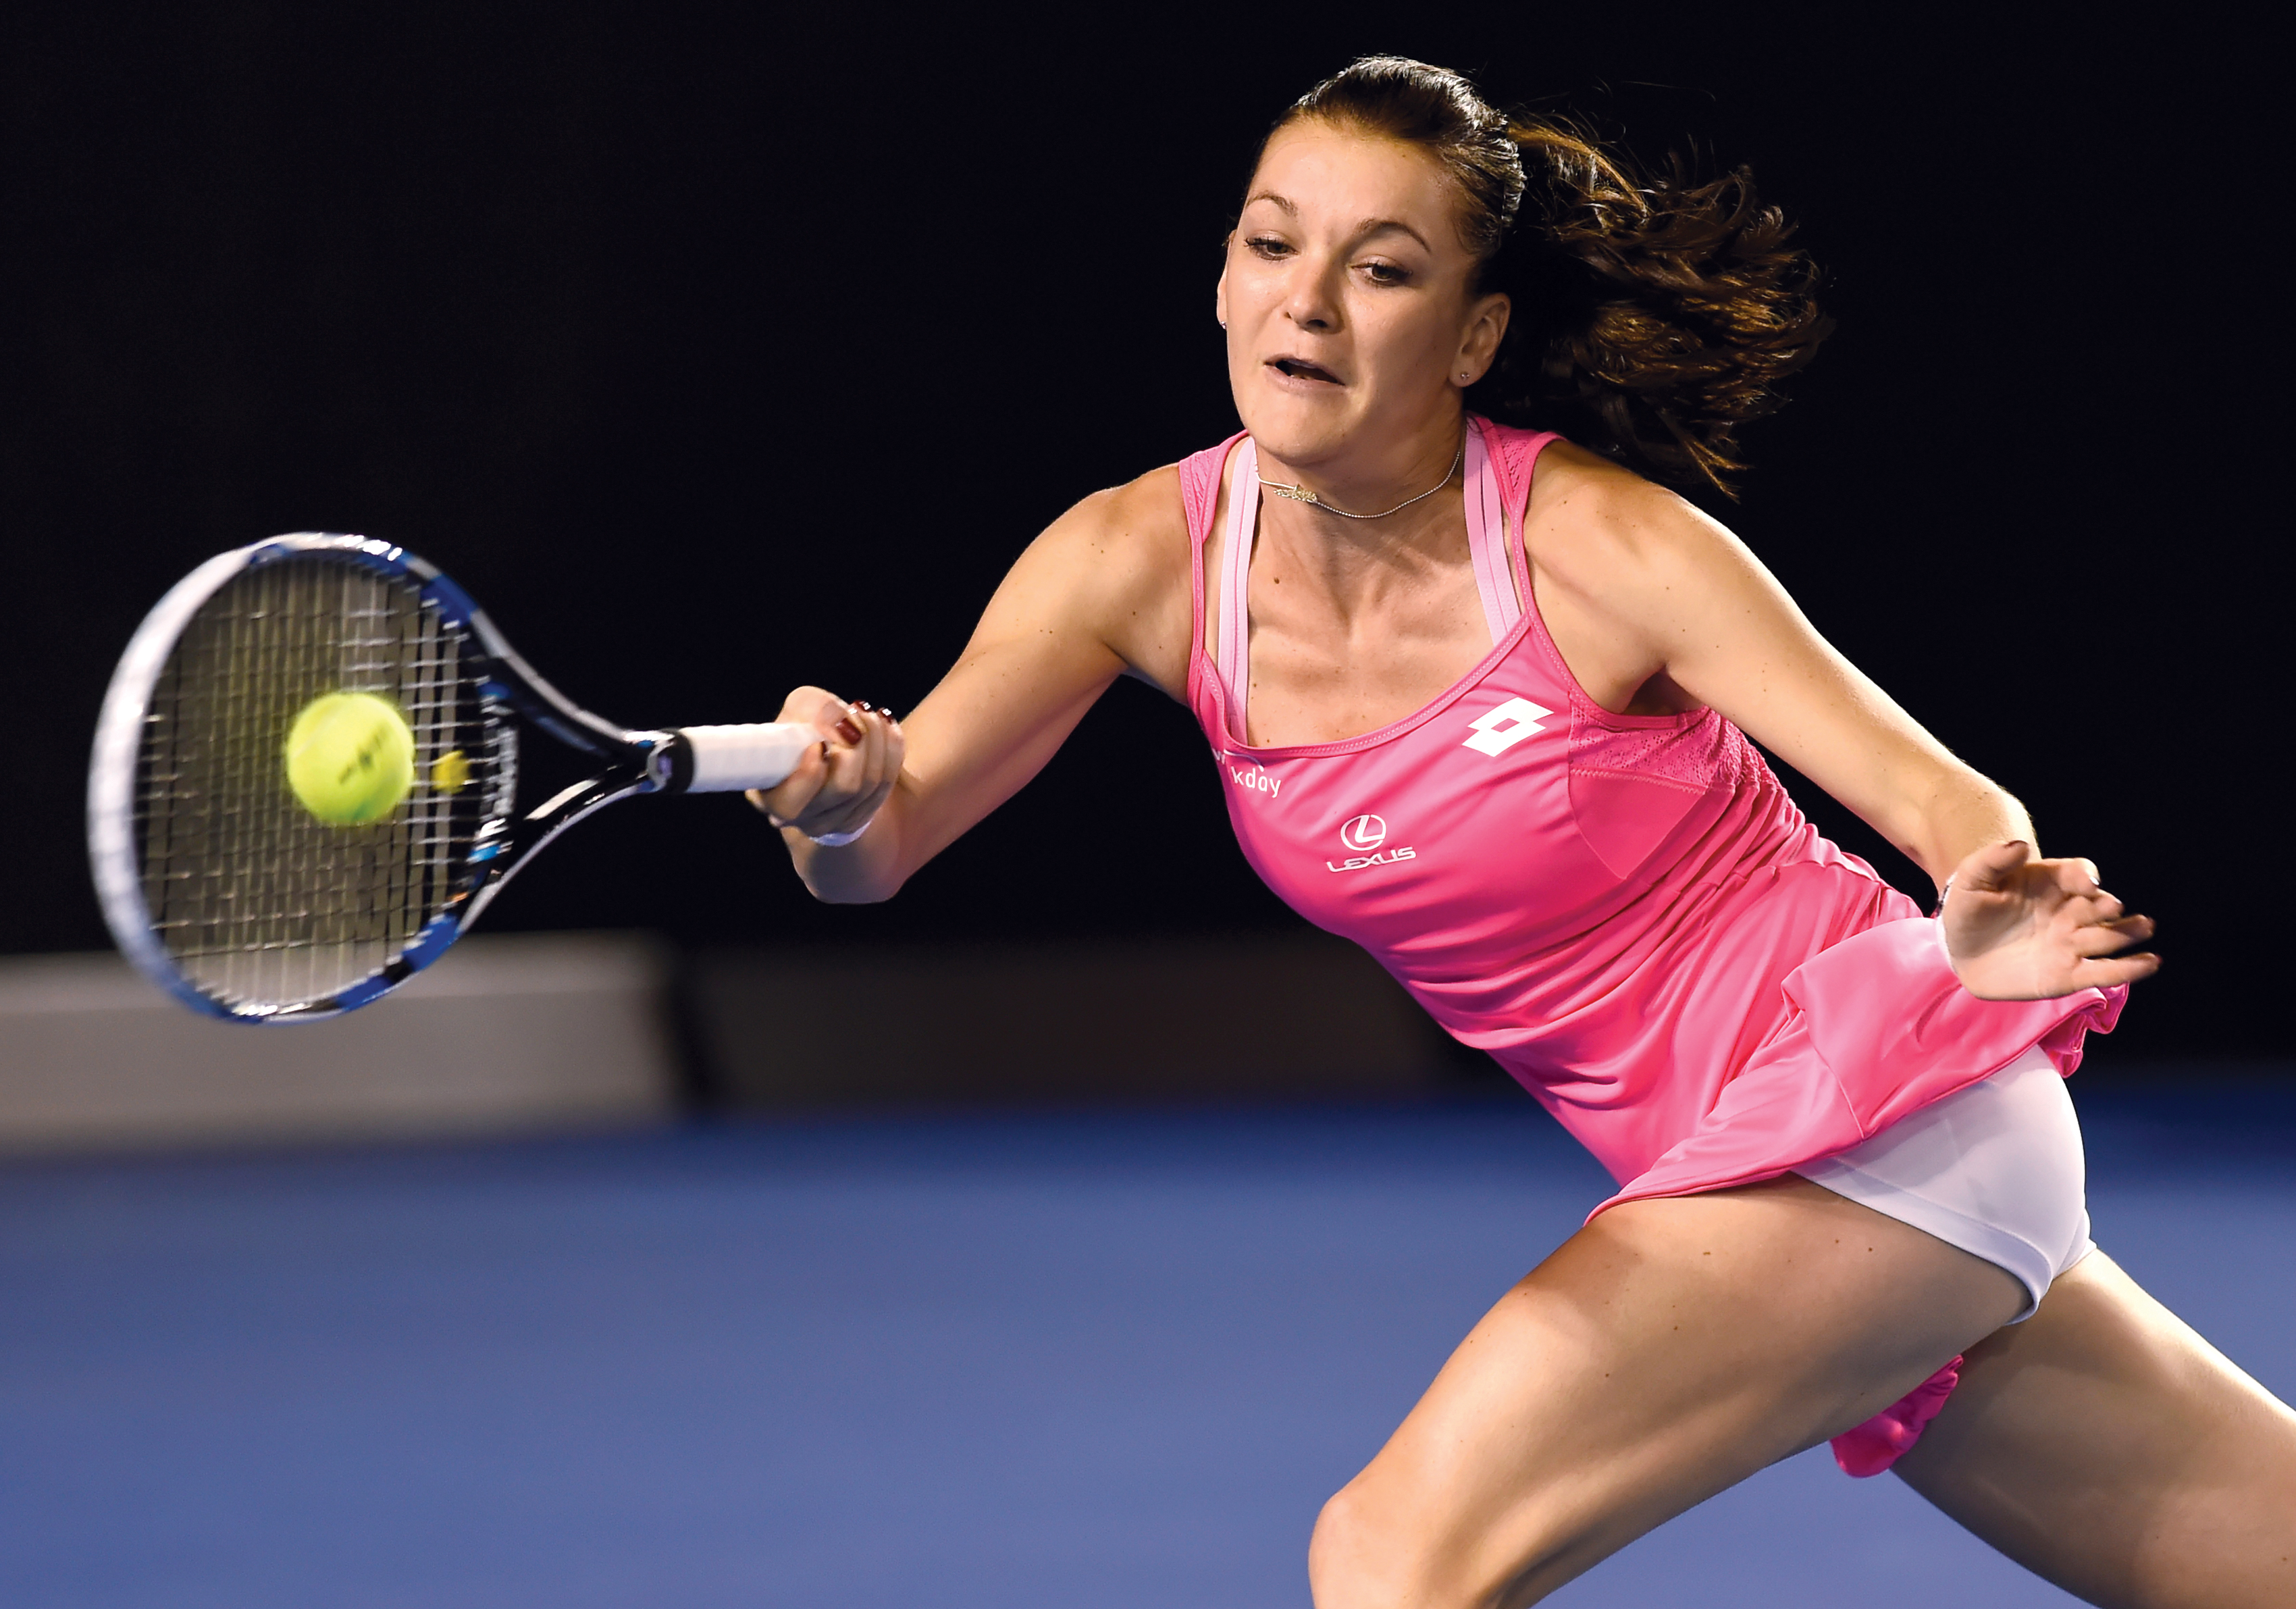 Agnieszka Radwanska of Poland plays a forehand return to Serena Williams of the United States during their semifinal match at the Australian Open tennis championships in Melbourne, Australia, Thursday, Jan. 28, 2016.(AP Photo/Andrew Brownbill)